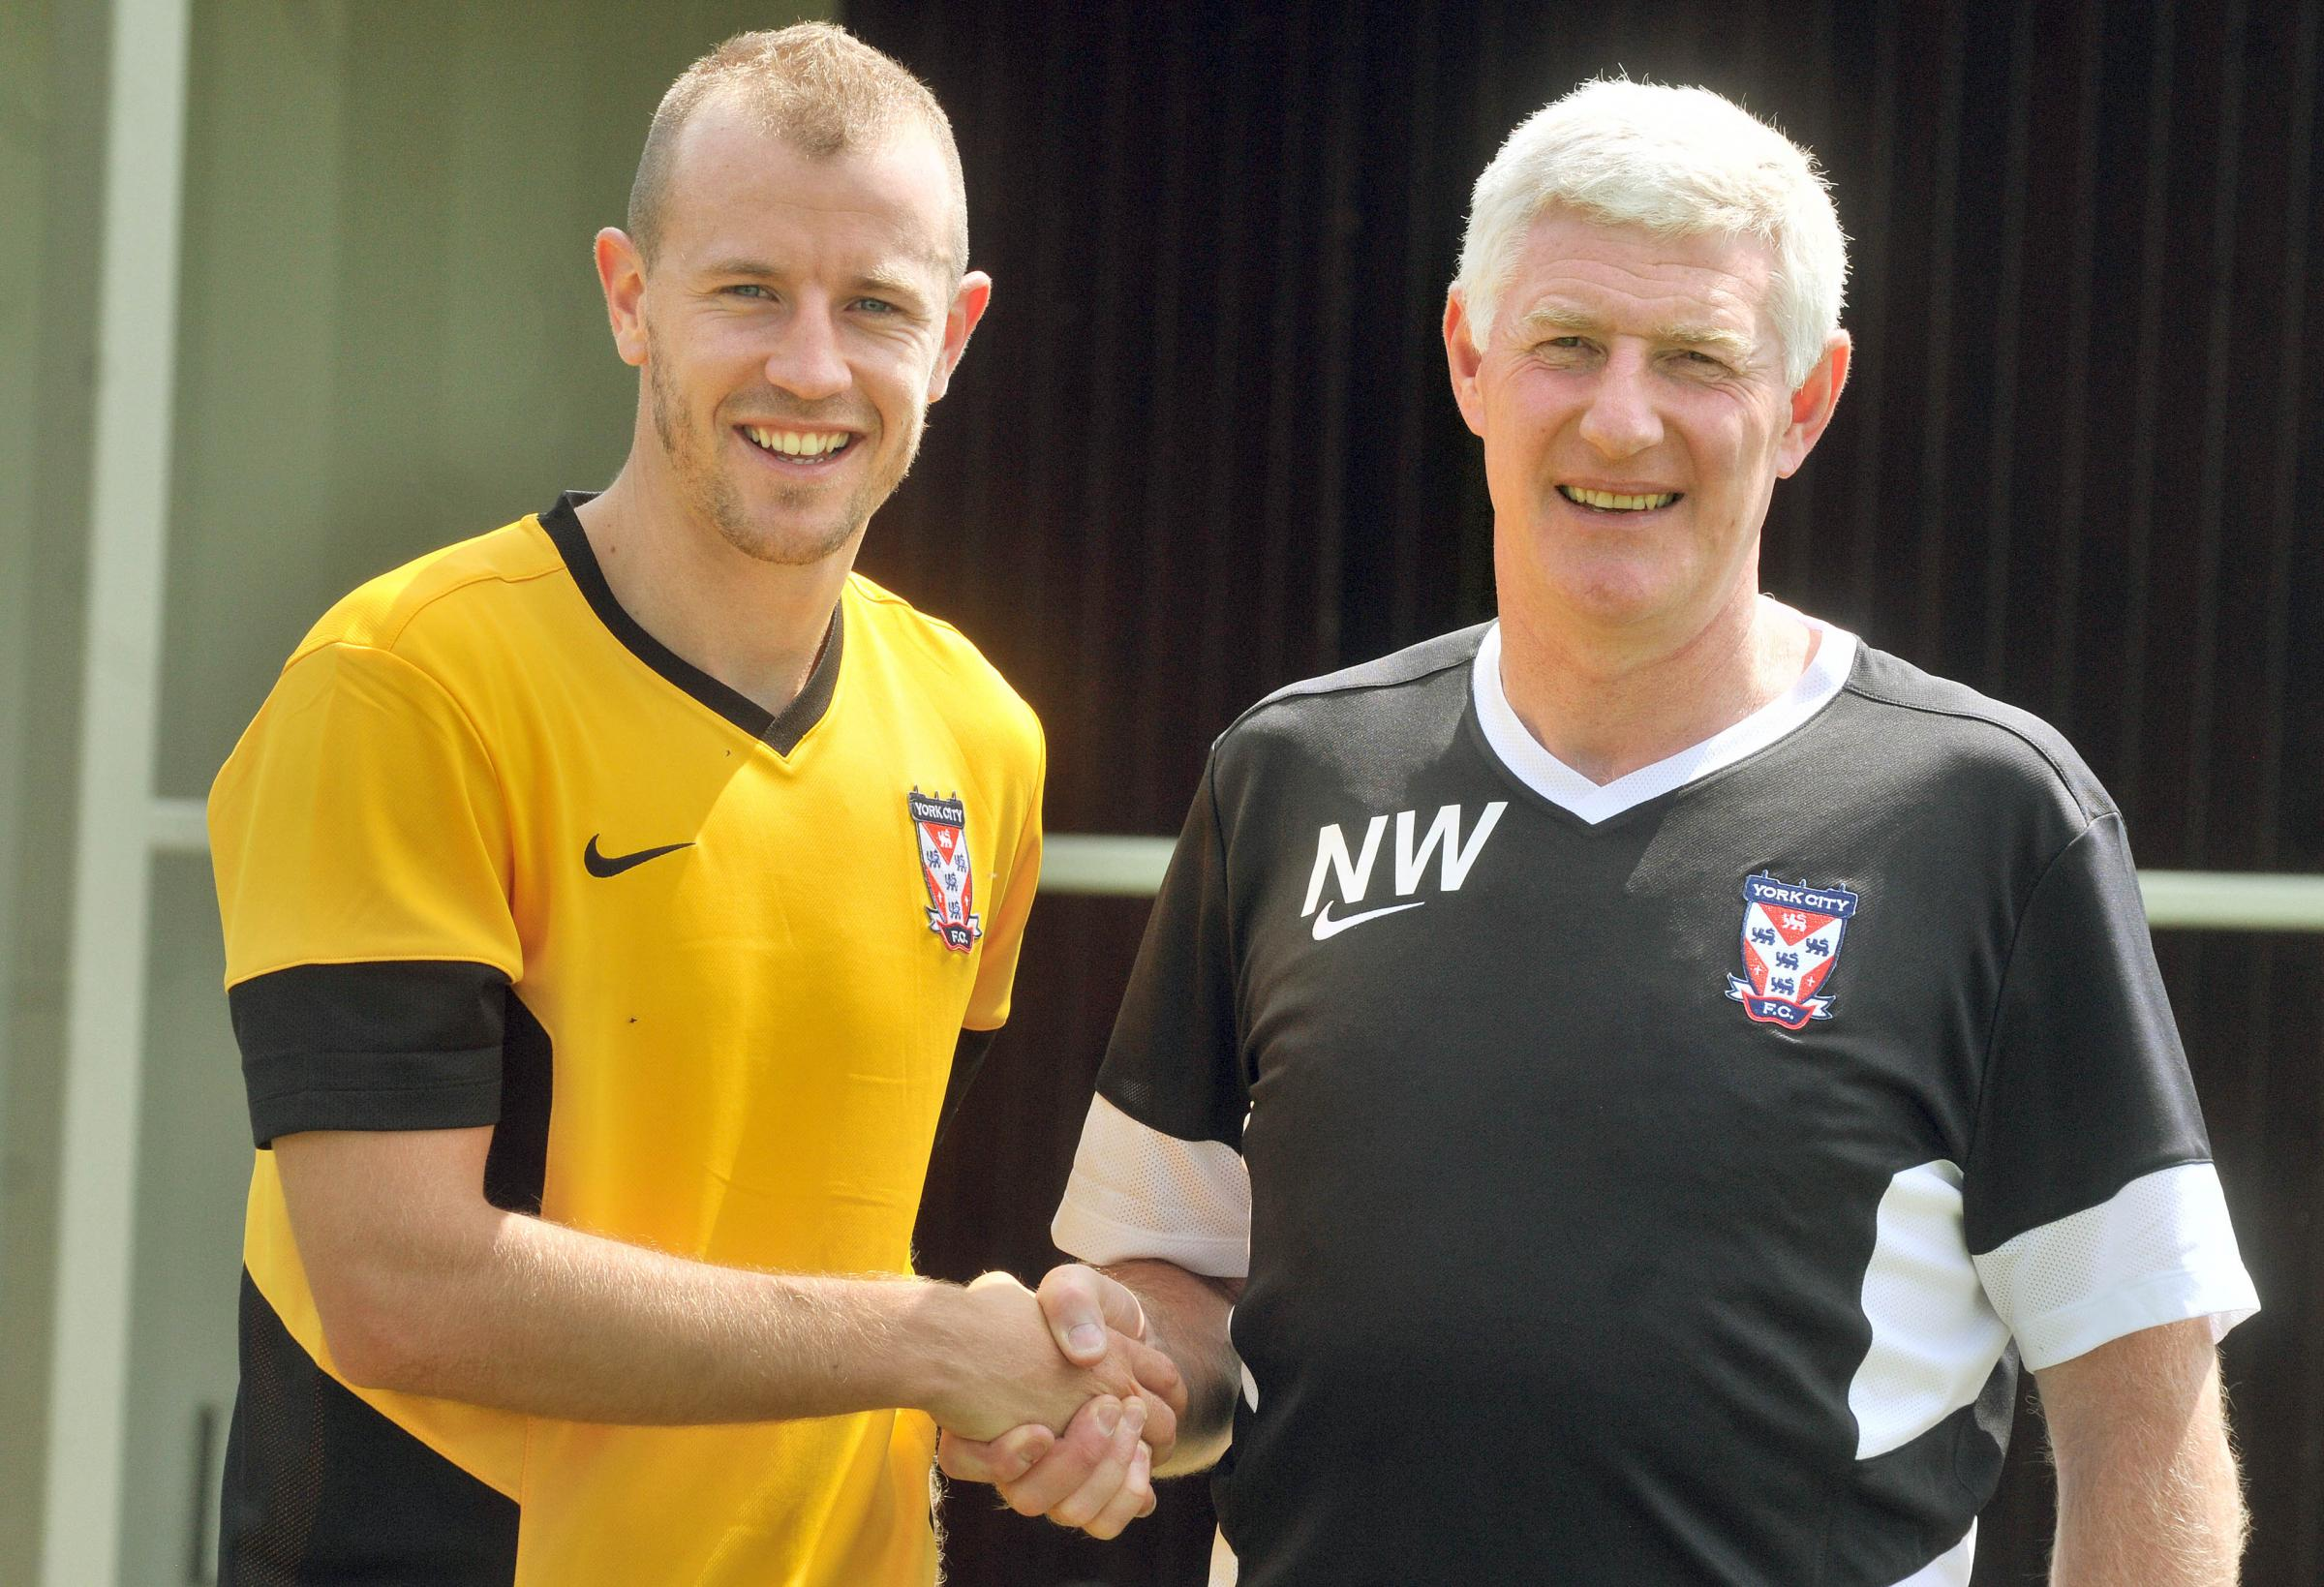 Midfielder Luke Summerfield with York City manager Nigel Worthington after joining the Minstermen from Shrewsbury